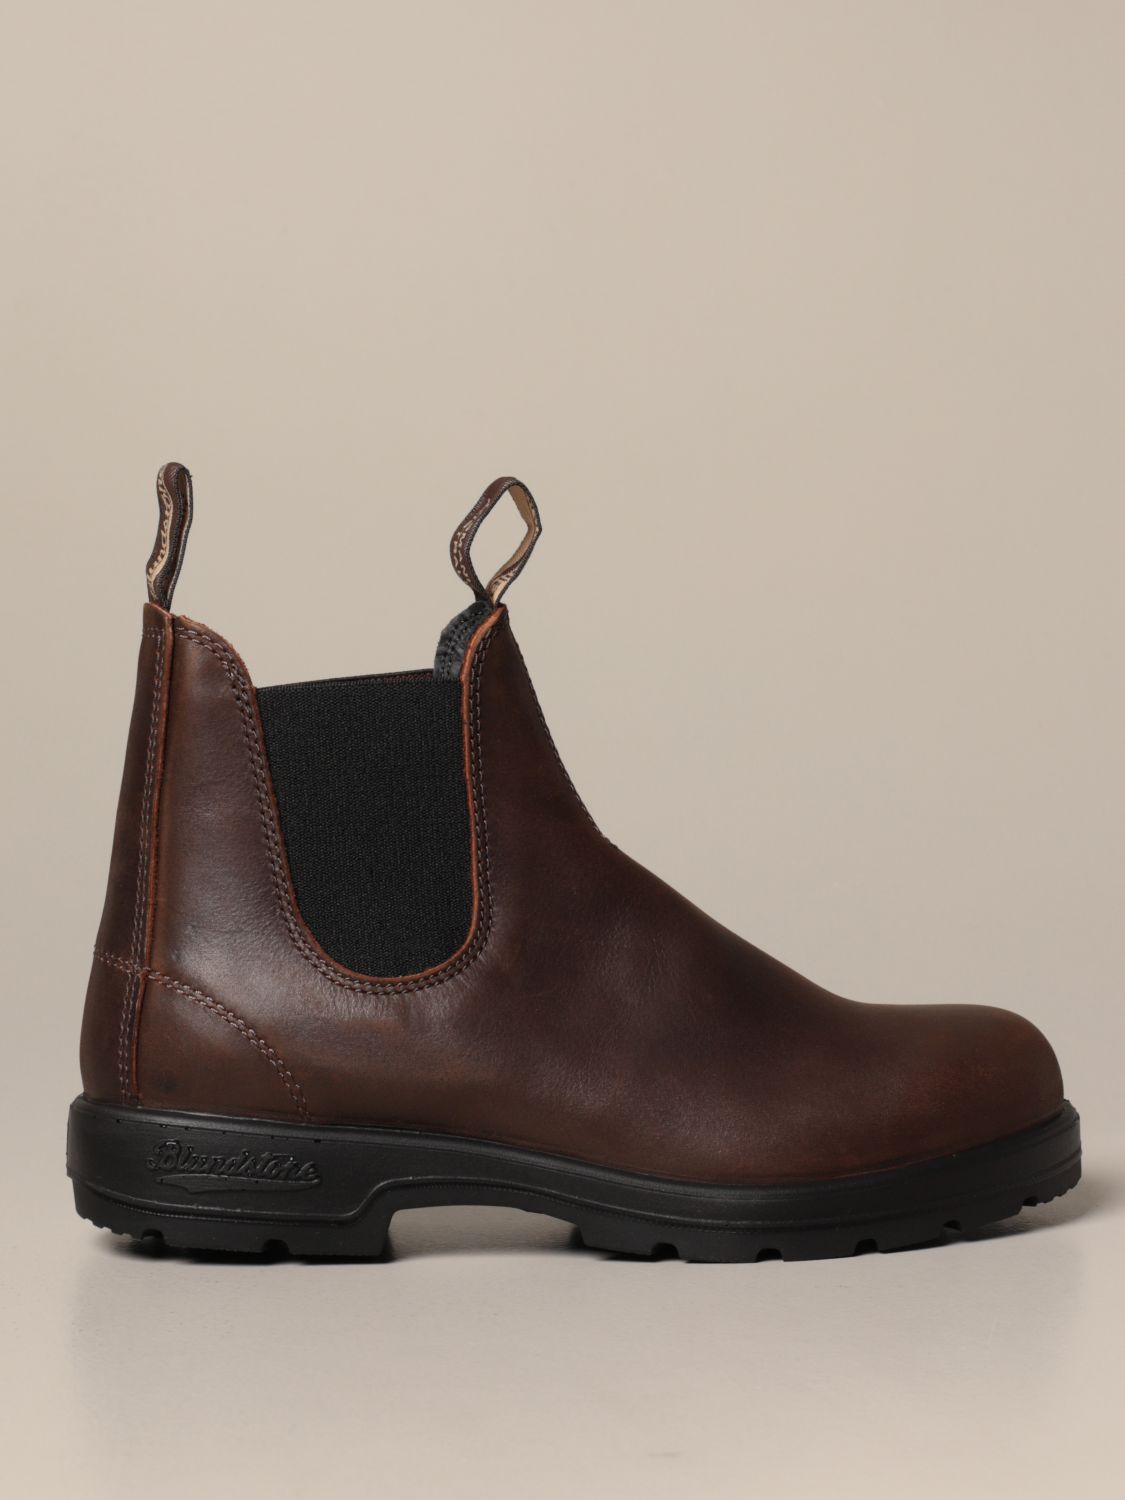 Boots Blundstone: Boots men Blundstone brown 1